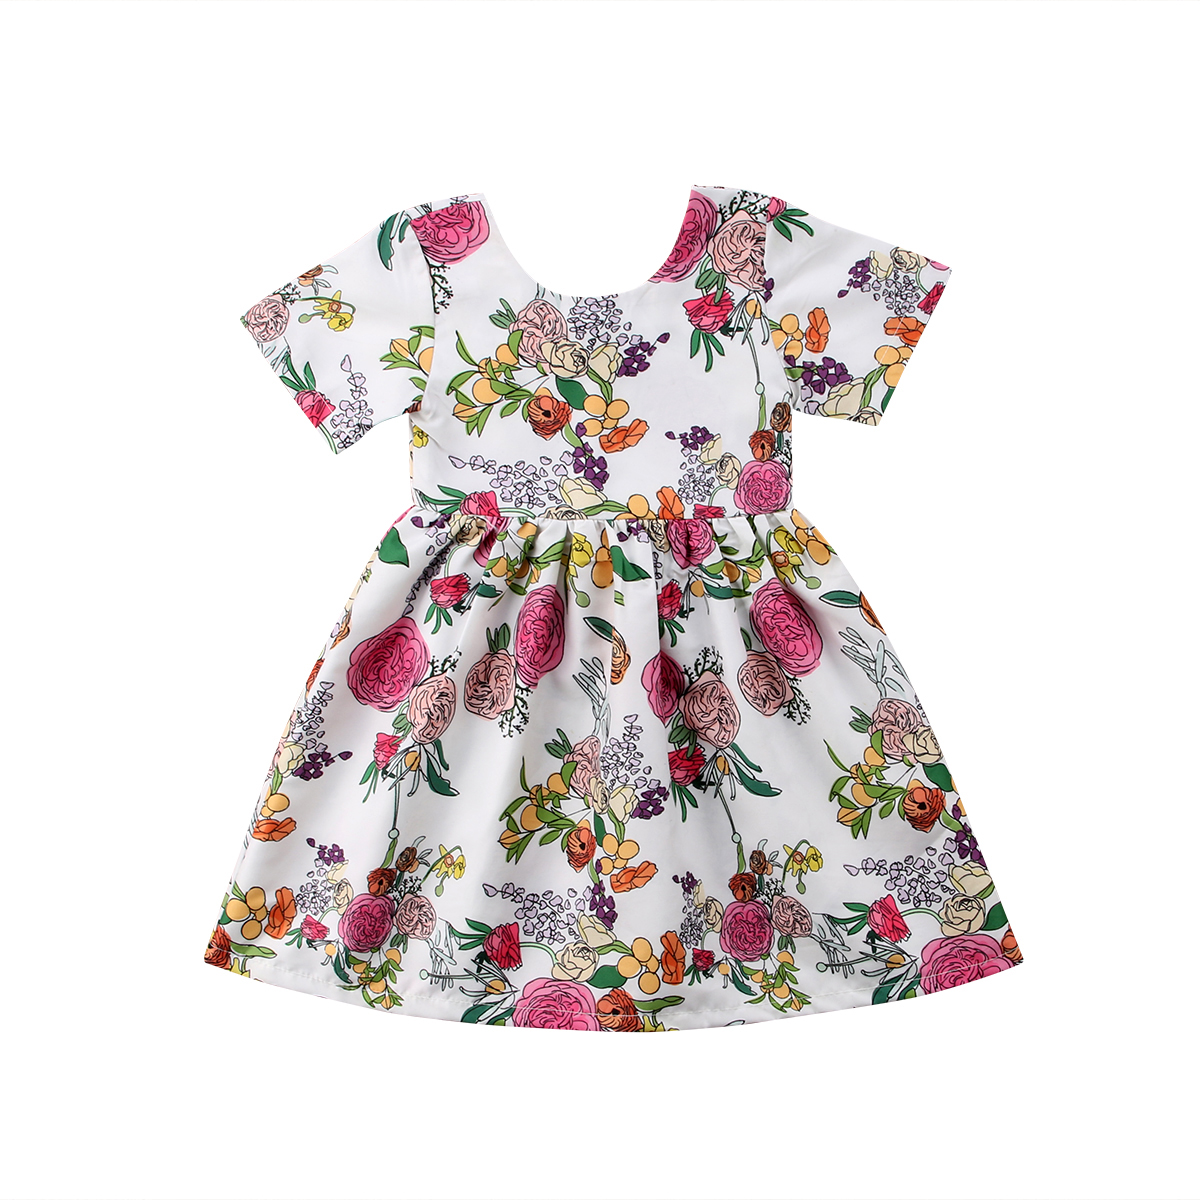 Flowers Kids Baby Girls Princess Party Short Sleeve Dress Sundress Summer 2-7T